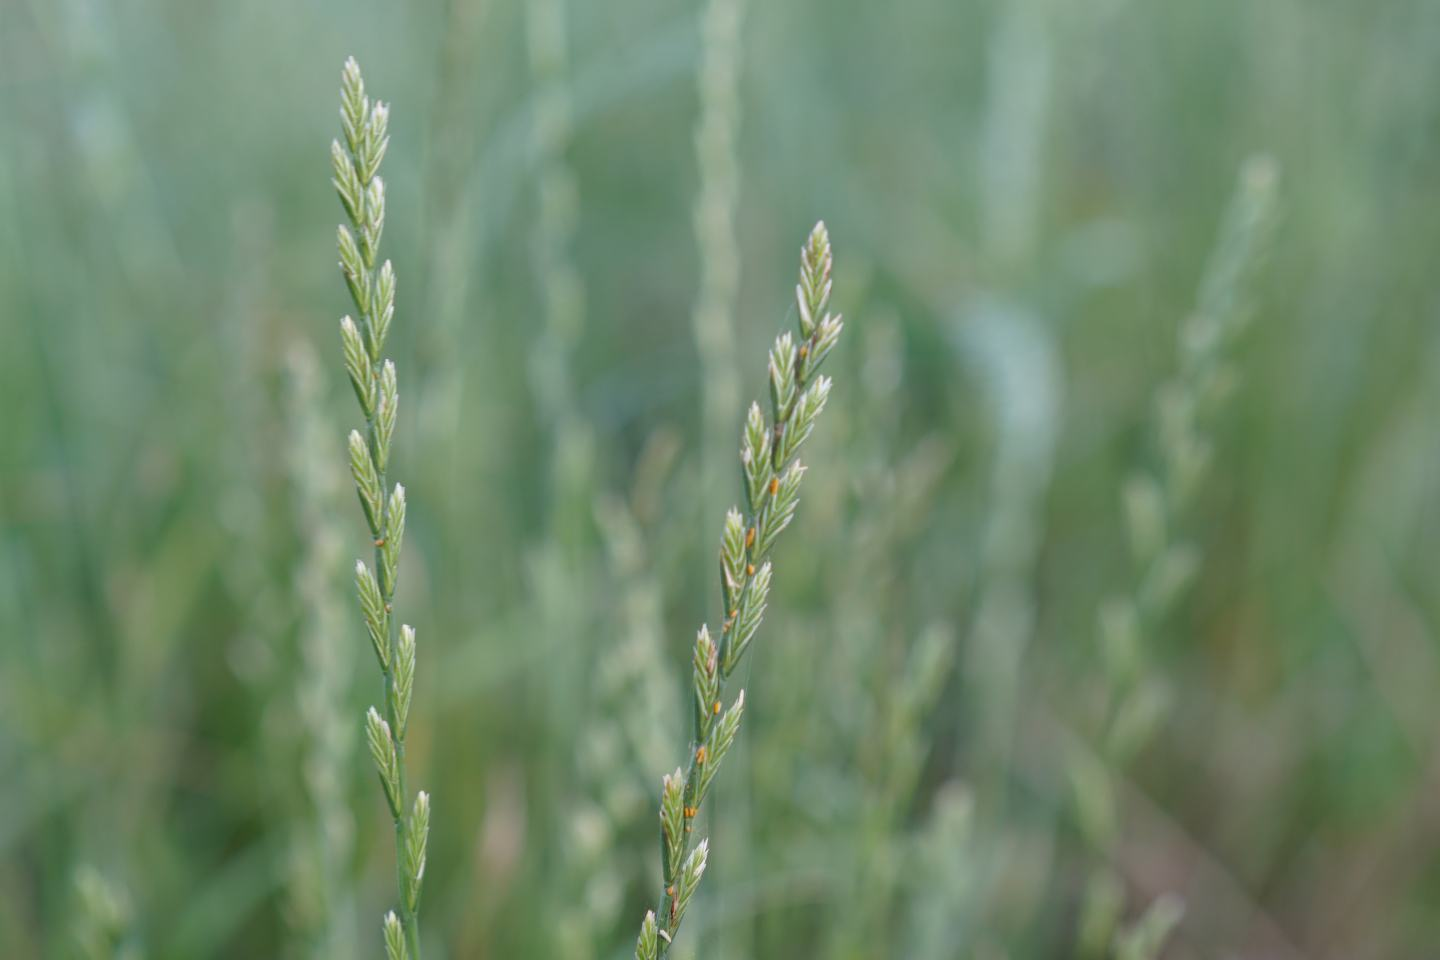 Close up of ryegrass